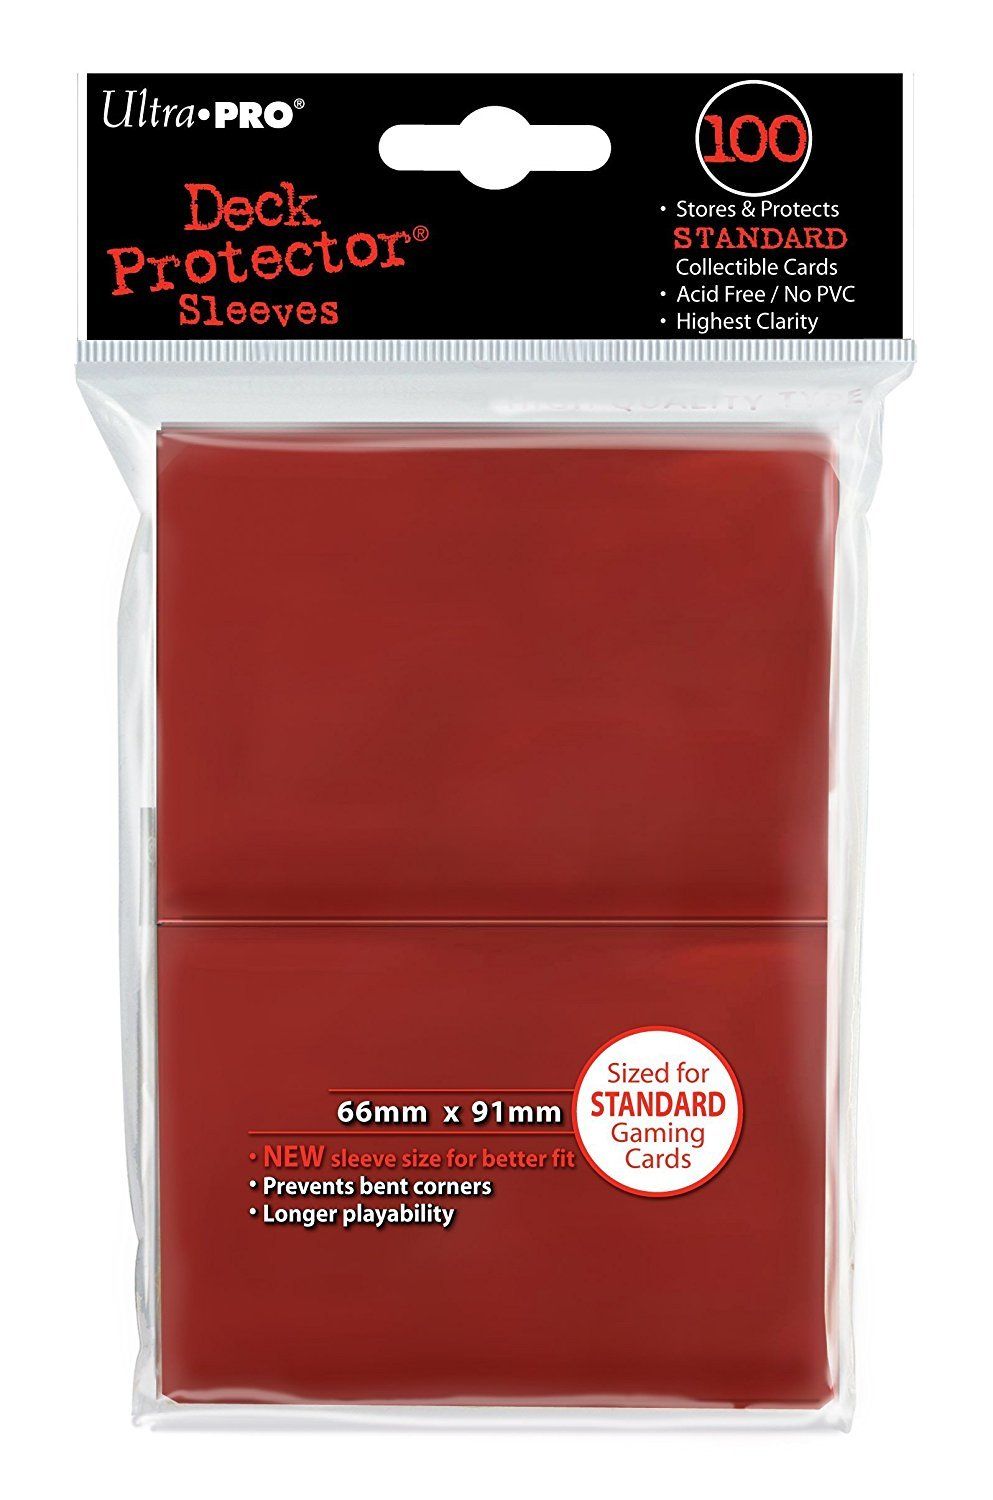 Ultra Pro Deck Protector, Standard, Red, 100 Count